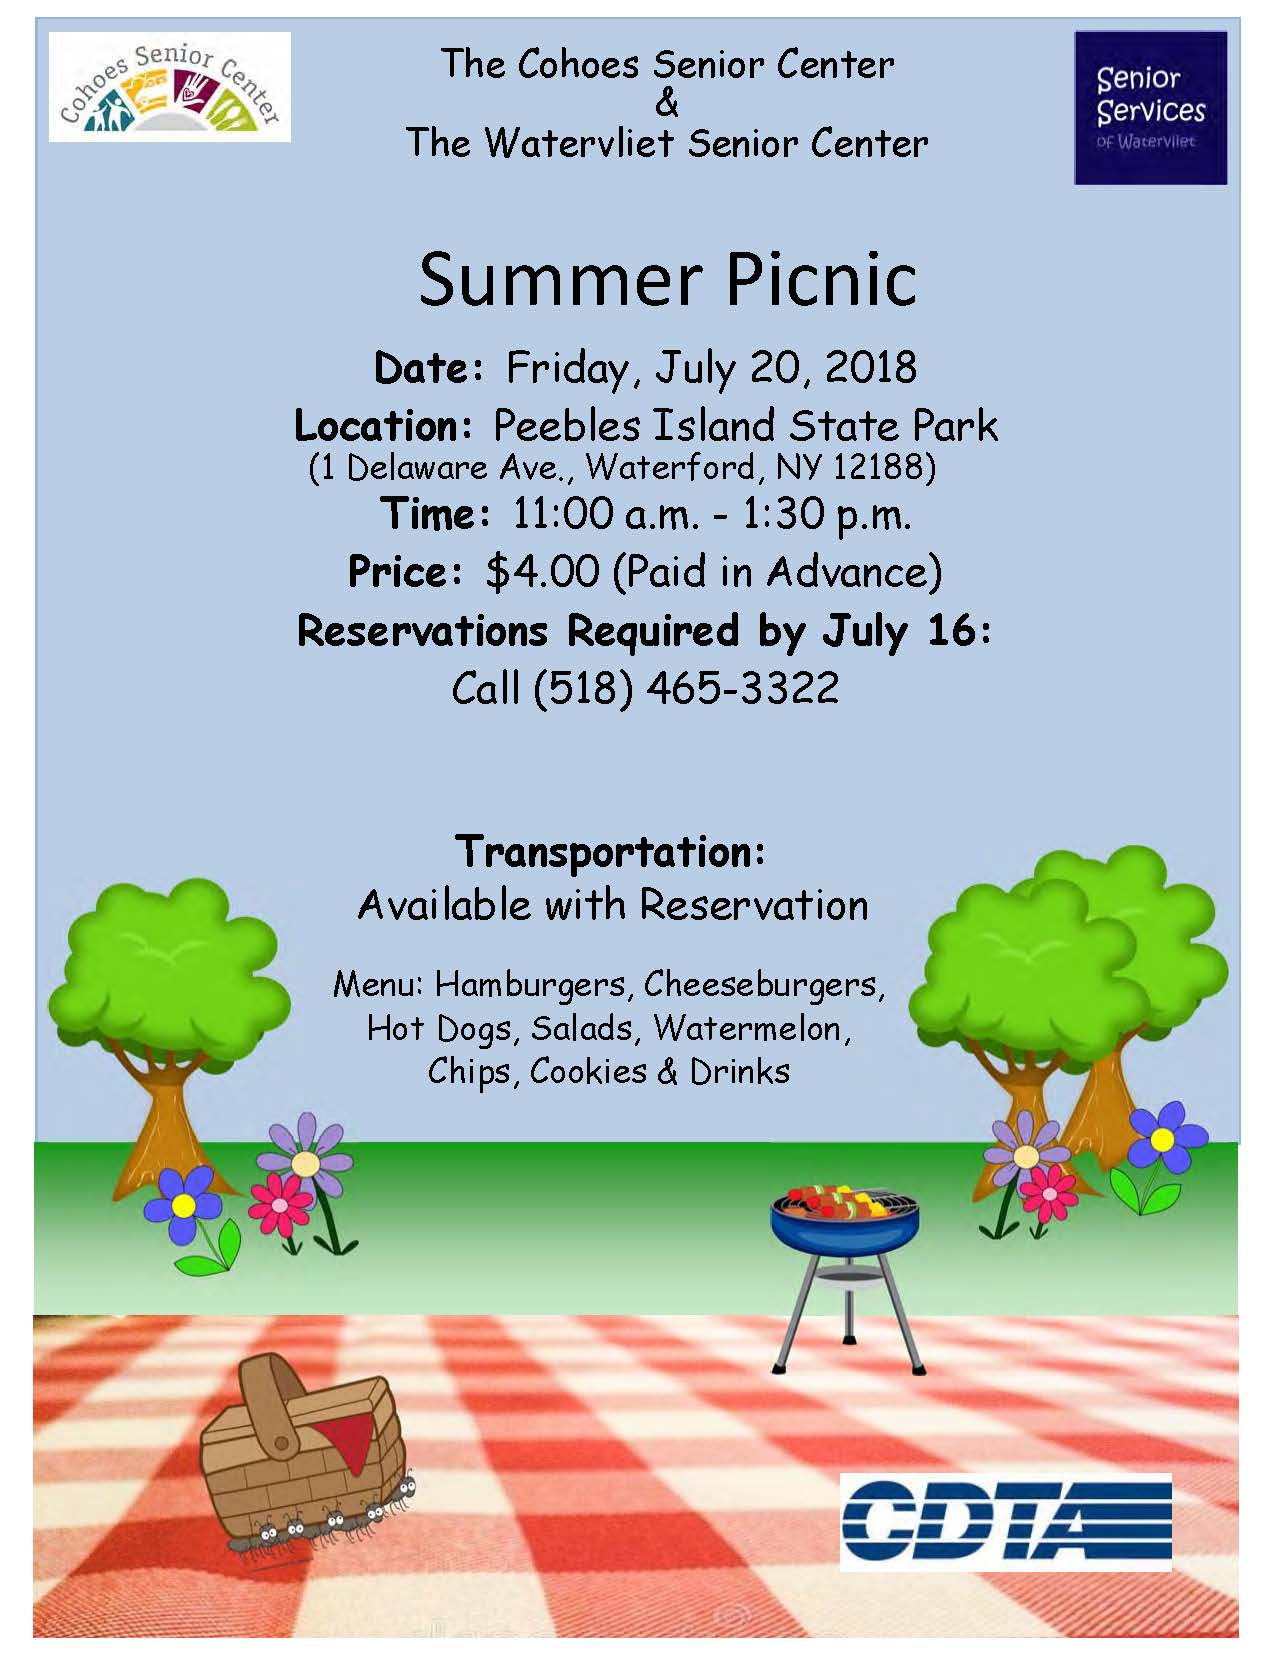 2018 Cohoes Summer Picnic Flyer